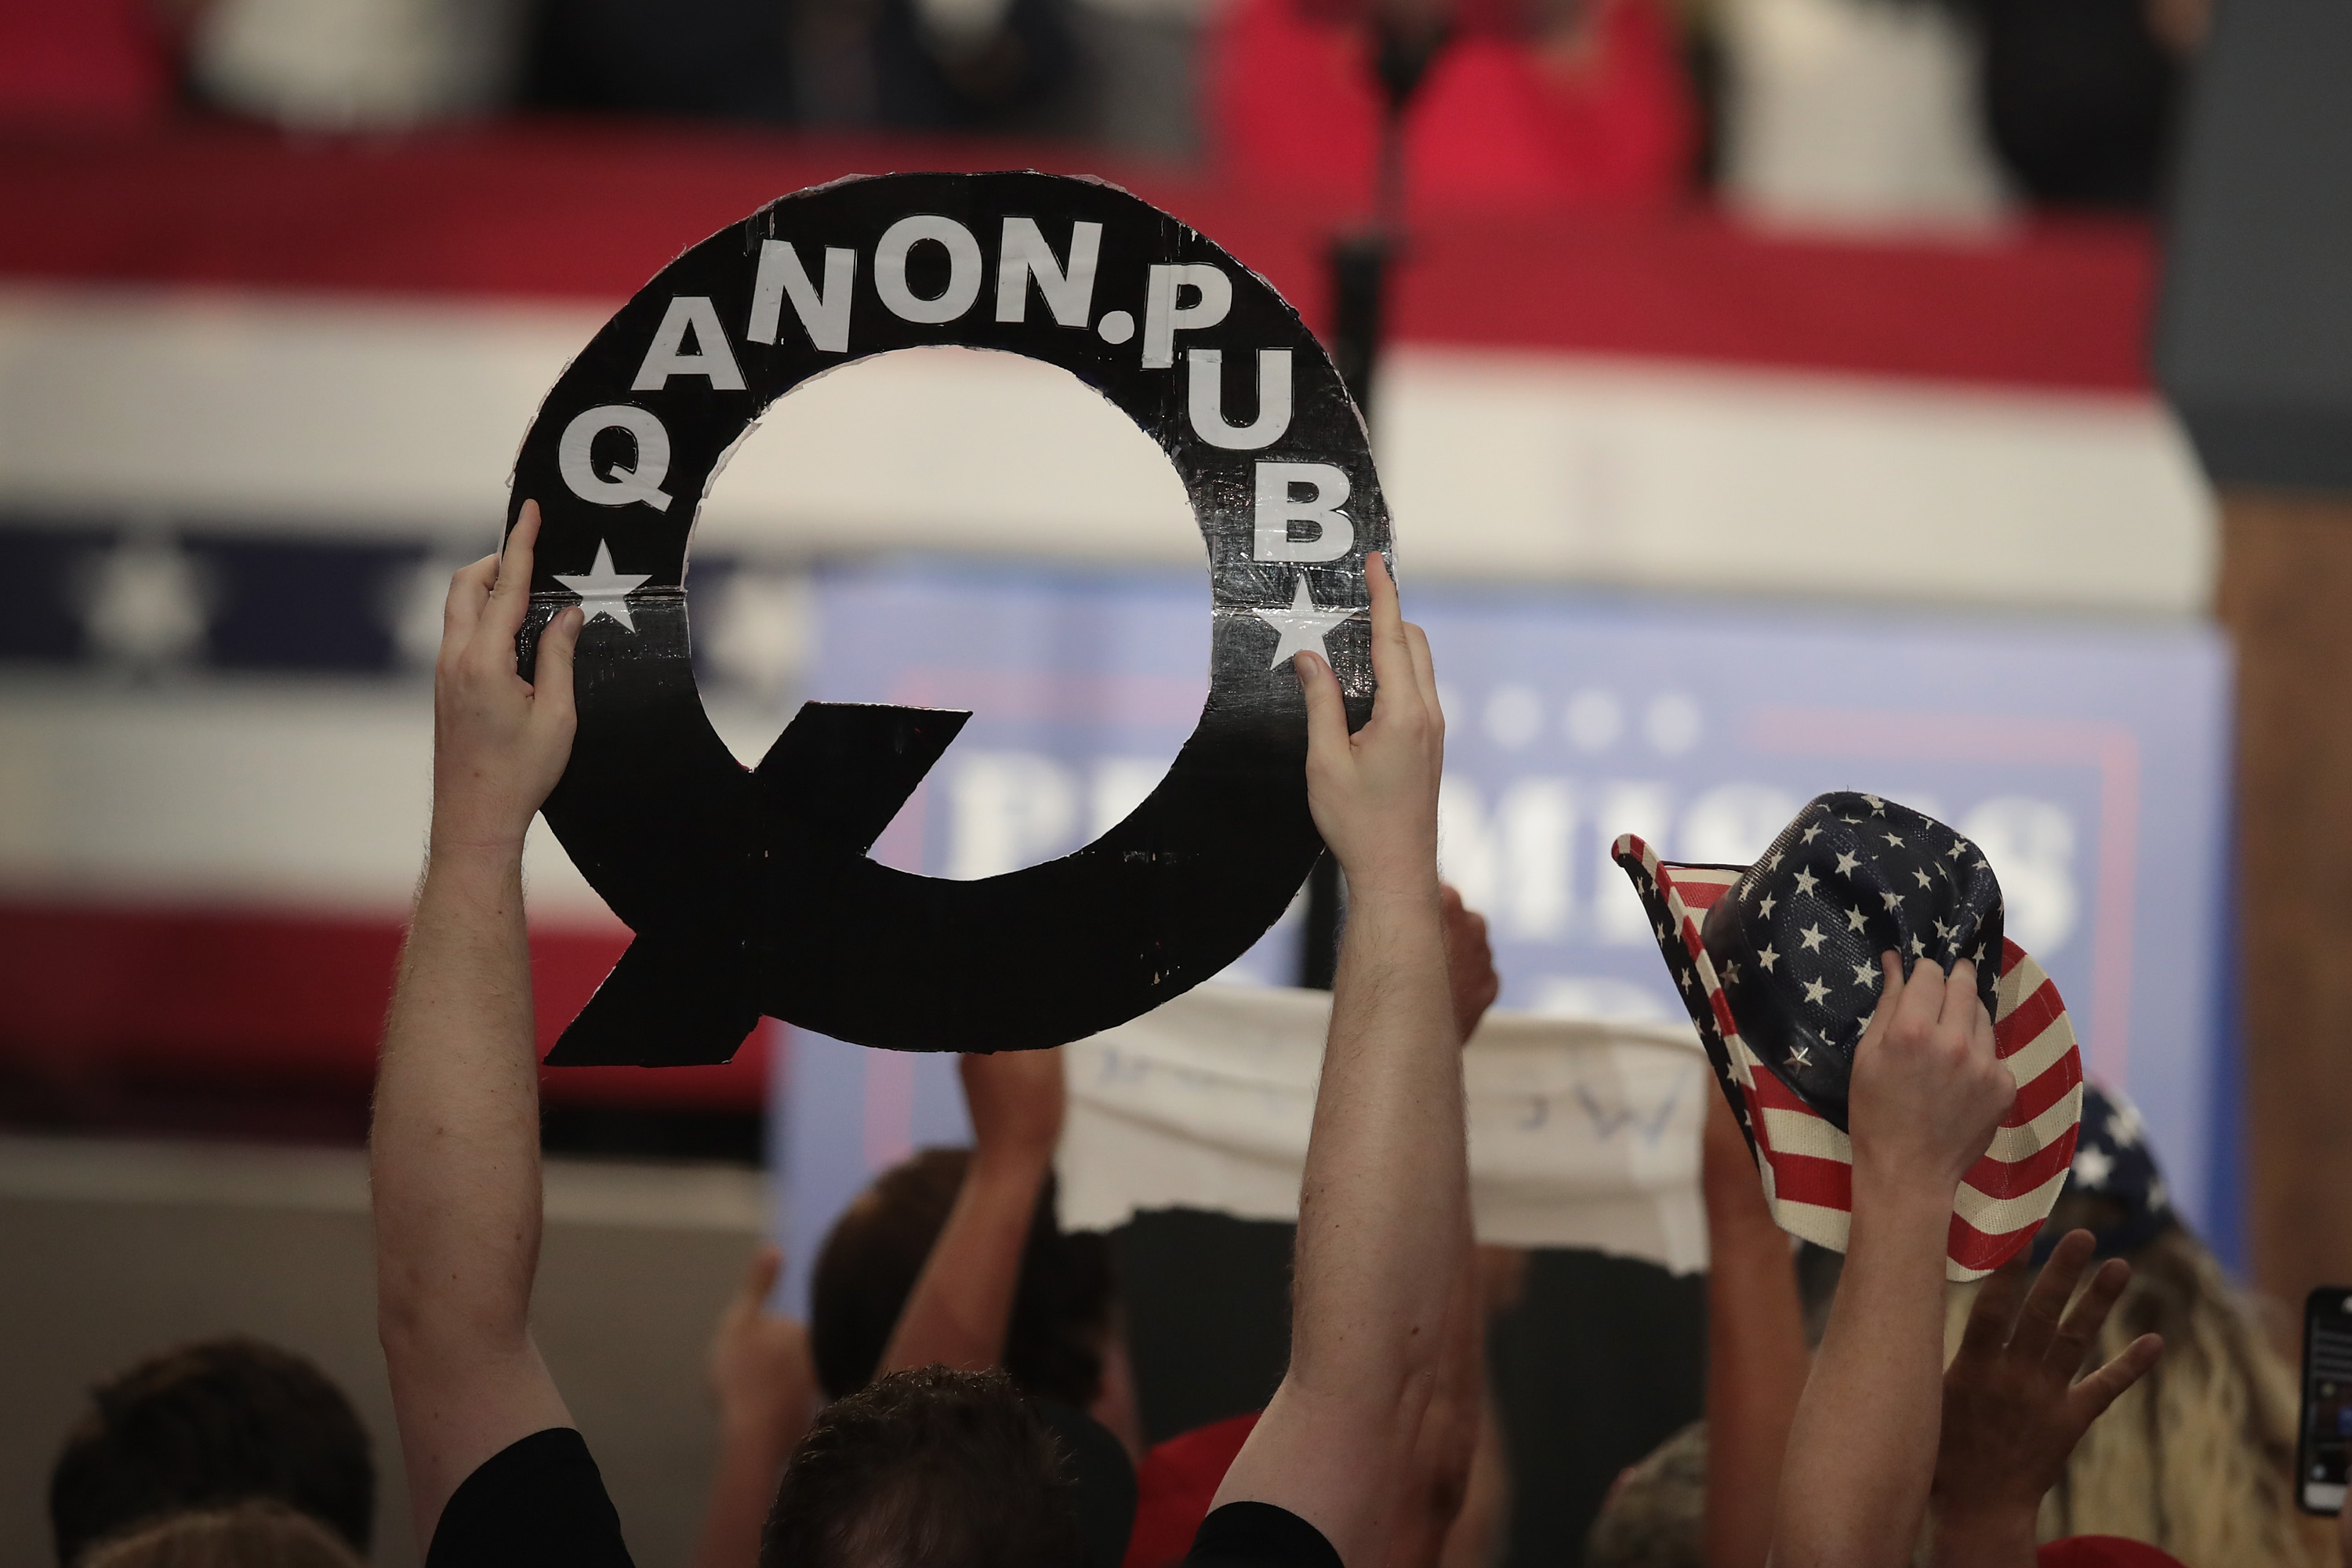 Who are QAnon supporters? The QAnon subreddit, analyzed with data  - Vox